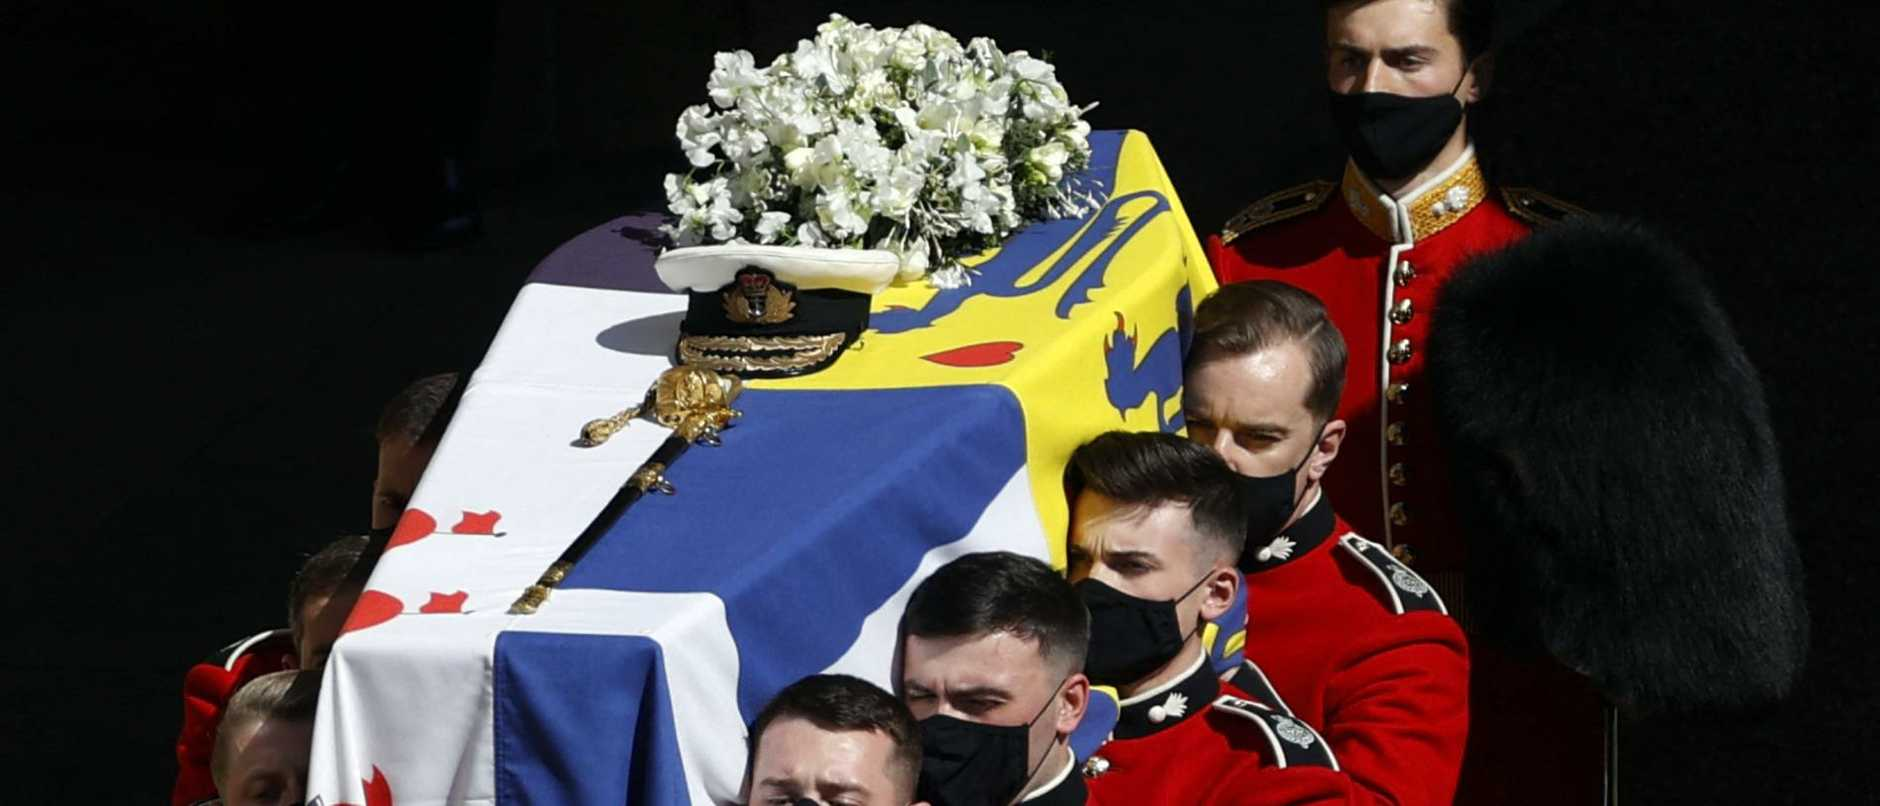 A  mum was taken by surprise while watching Prince Philip's funeral service on television, when a very familiar face came into view.